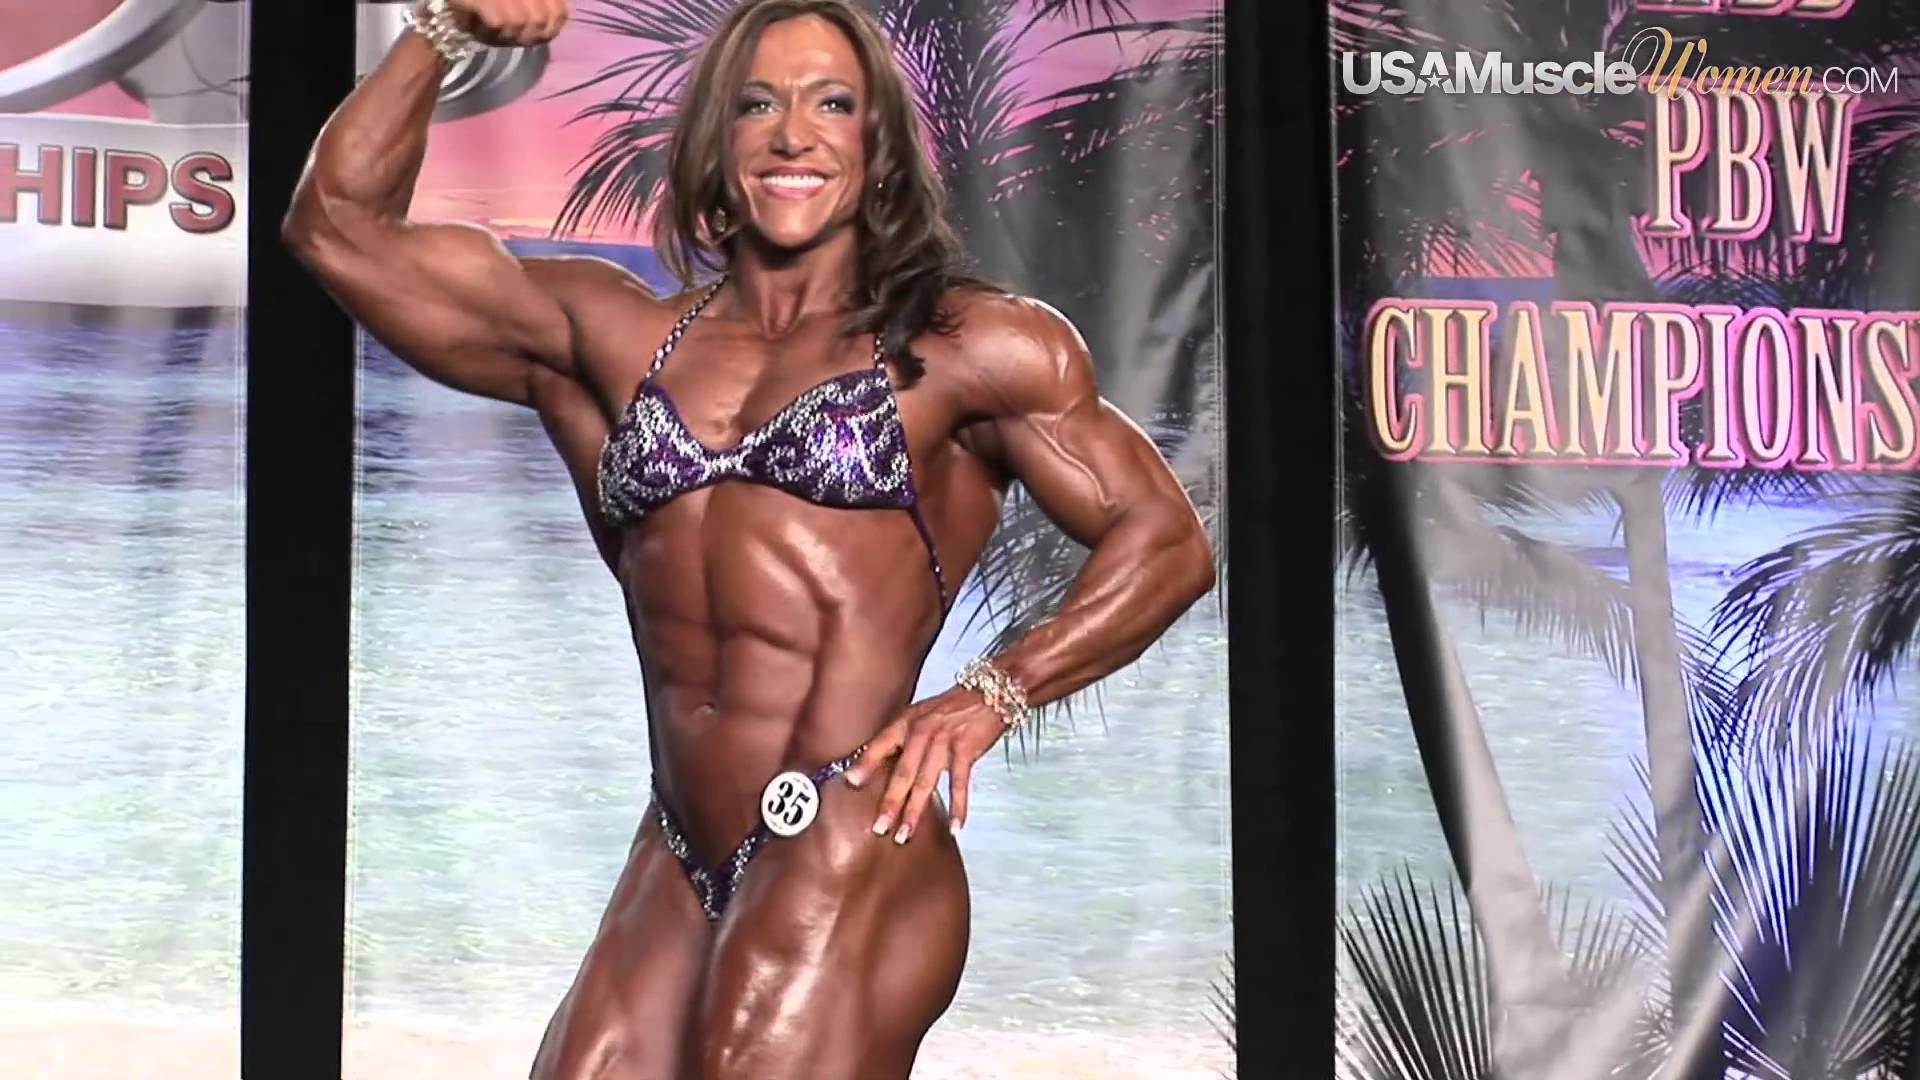 Tampa Pro 2012 – Bodybuilding, Physique, Figure & Bikini